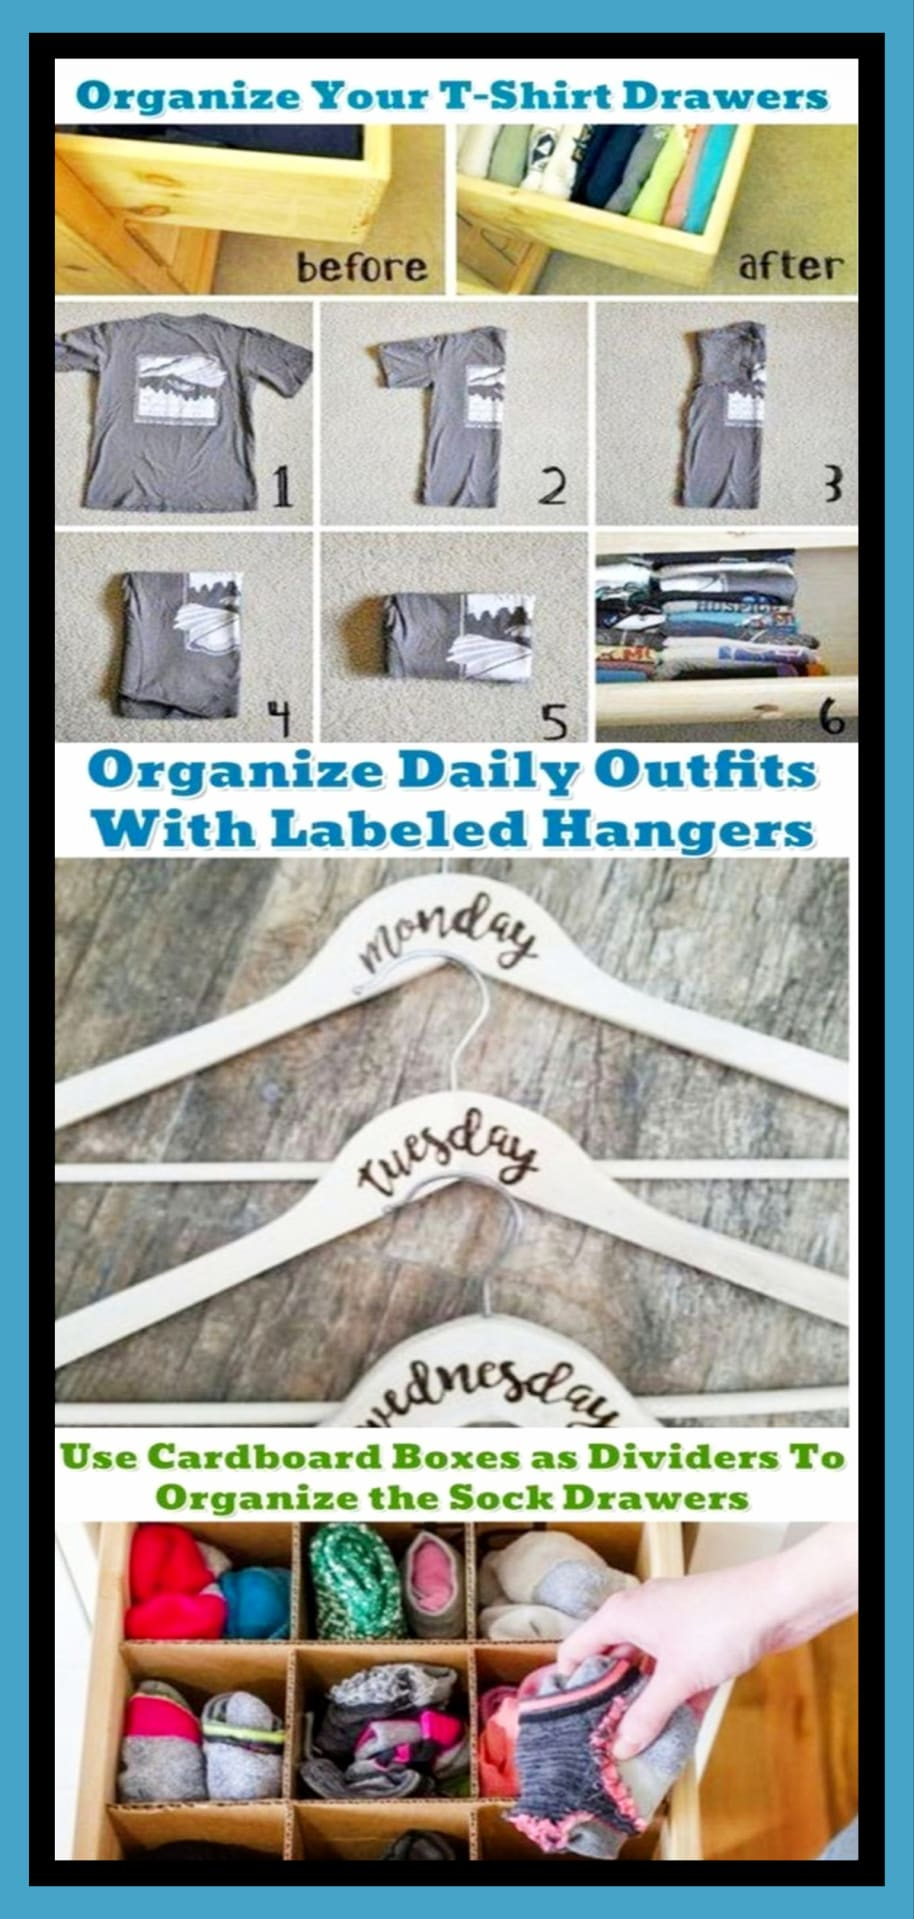 Get Organized!  Getting organized at home on a budget WITHOUT feeling overwhelmed by clutter